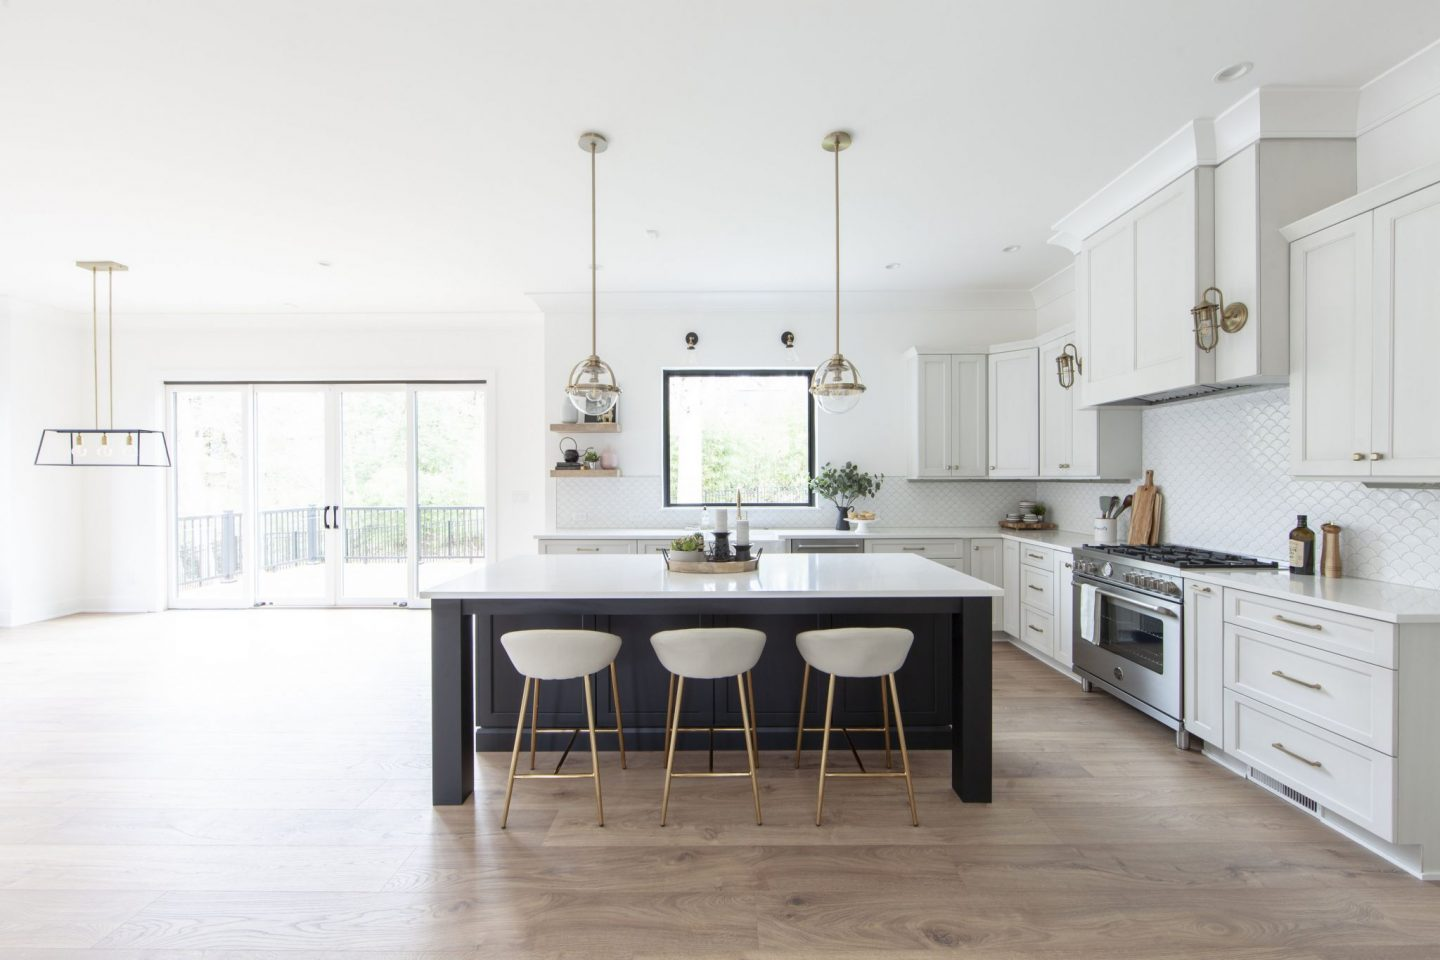 modern farmhouse - luxury kitchen - Chelsea Building Group - Schwaiger Realty Group